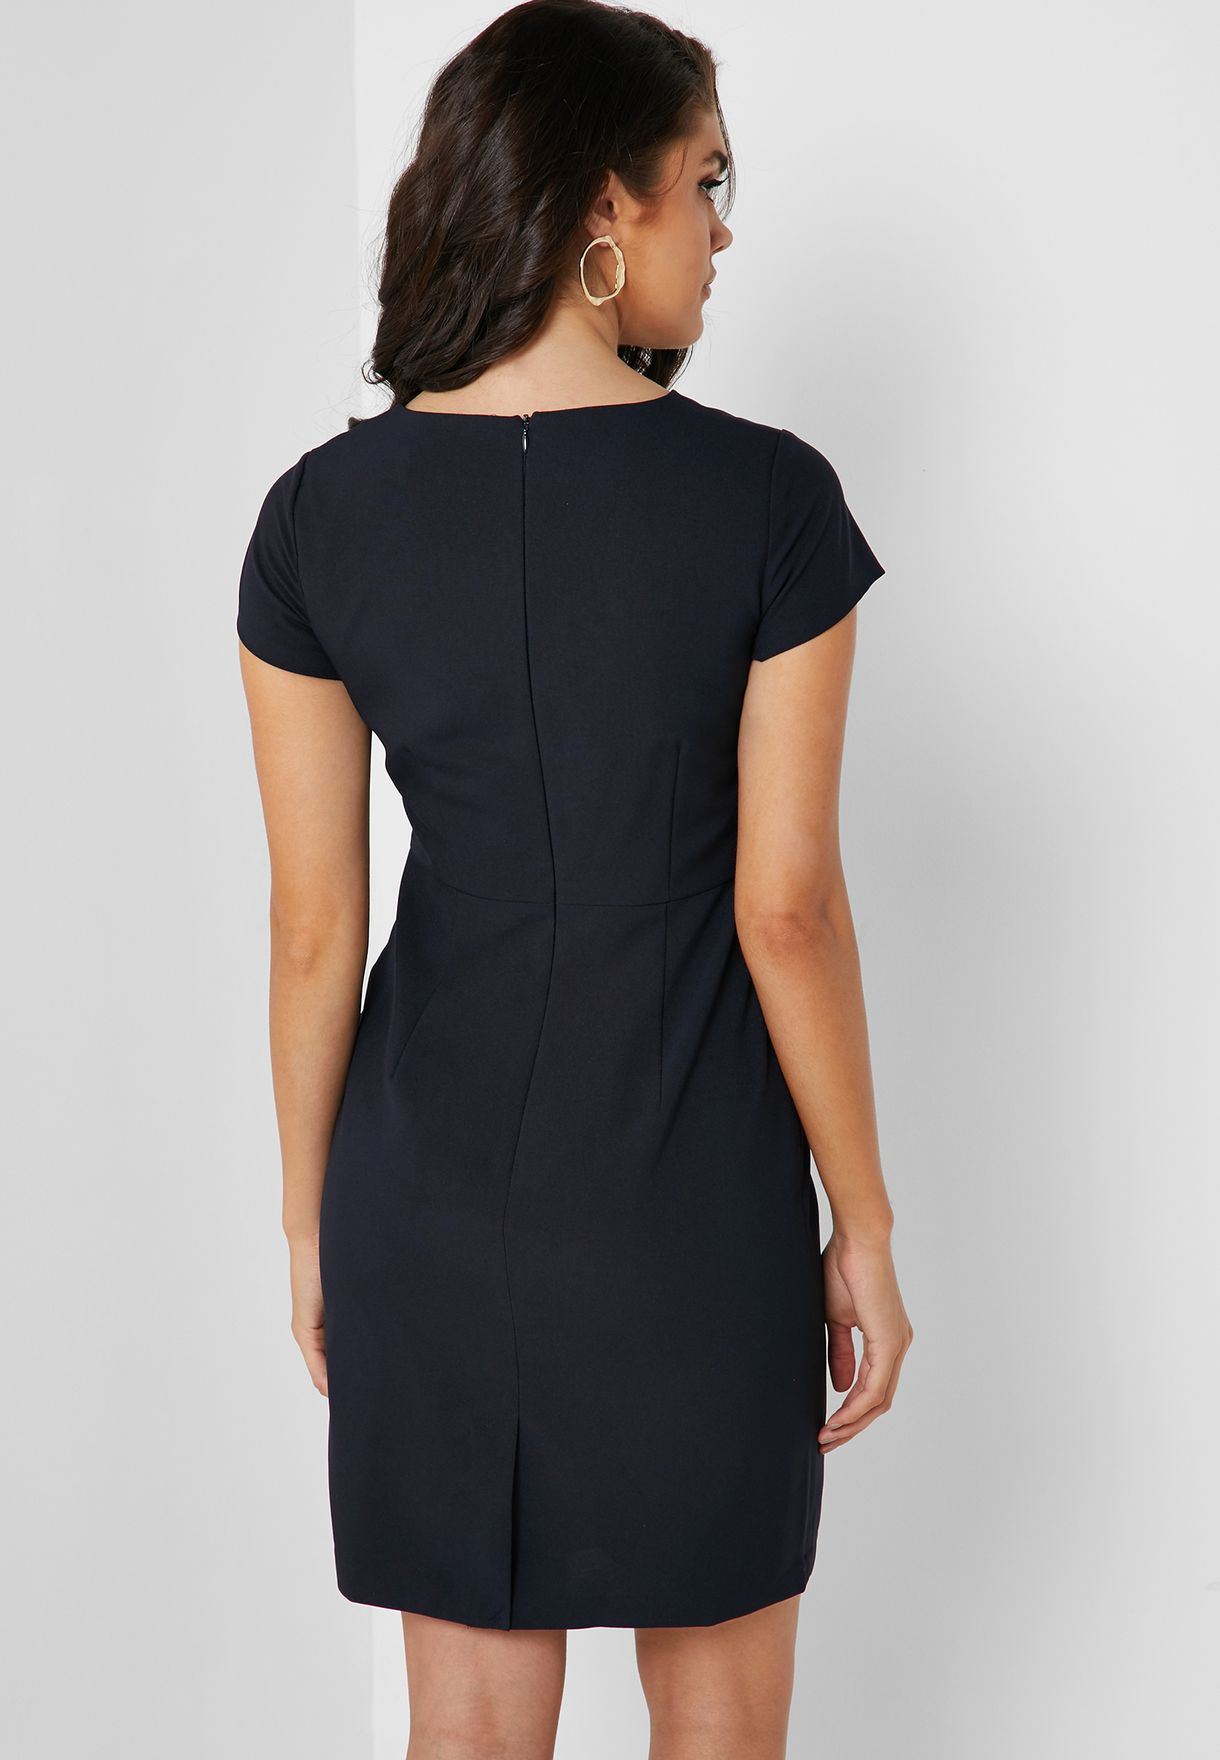 Ruched Waist Detail Dress